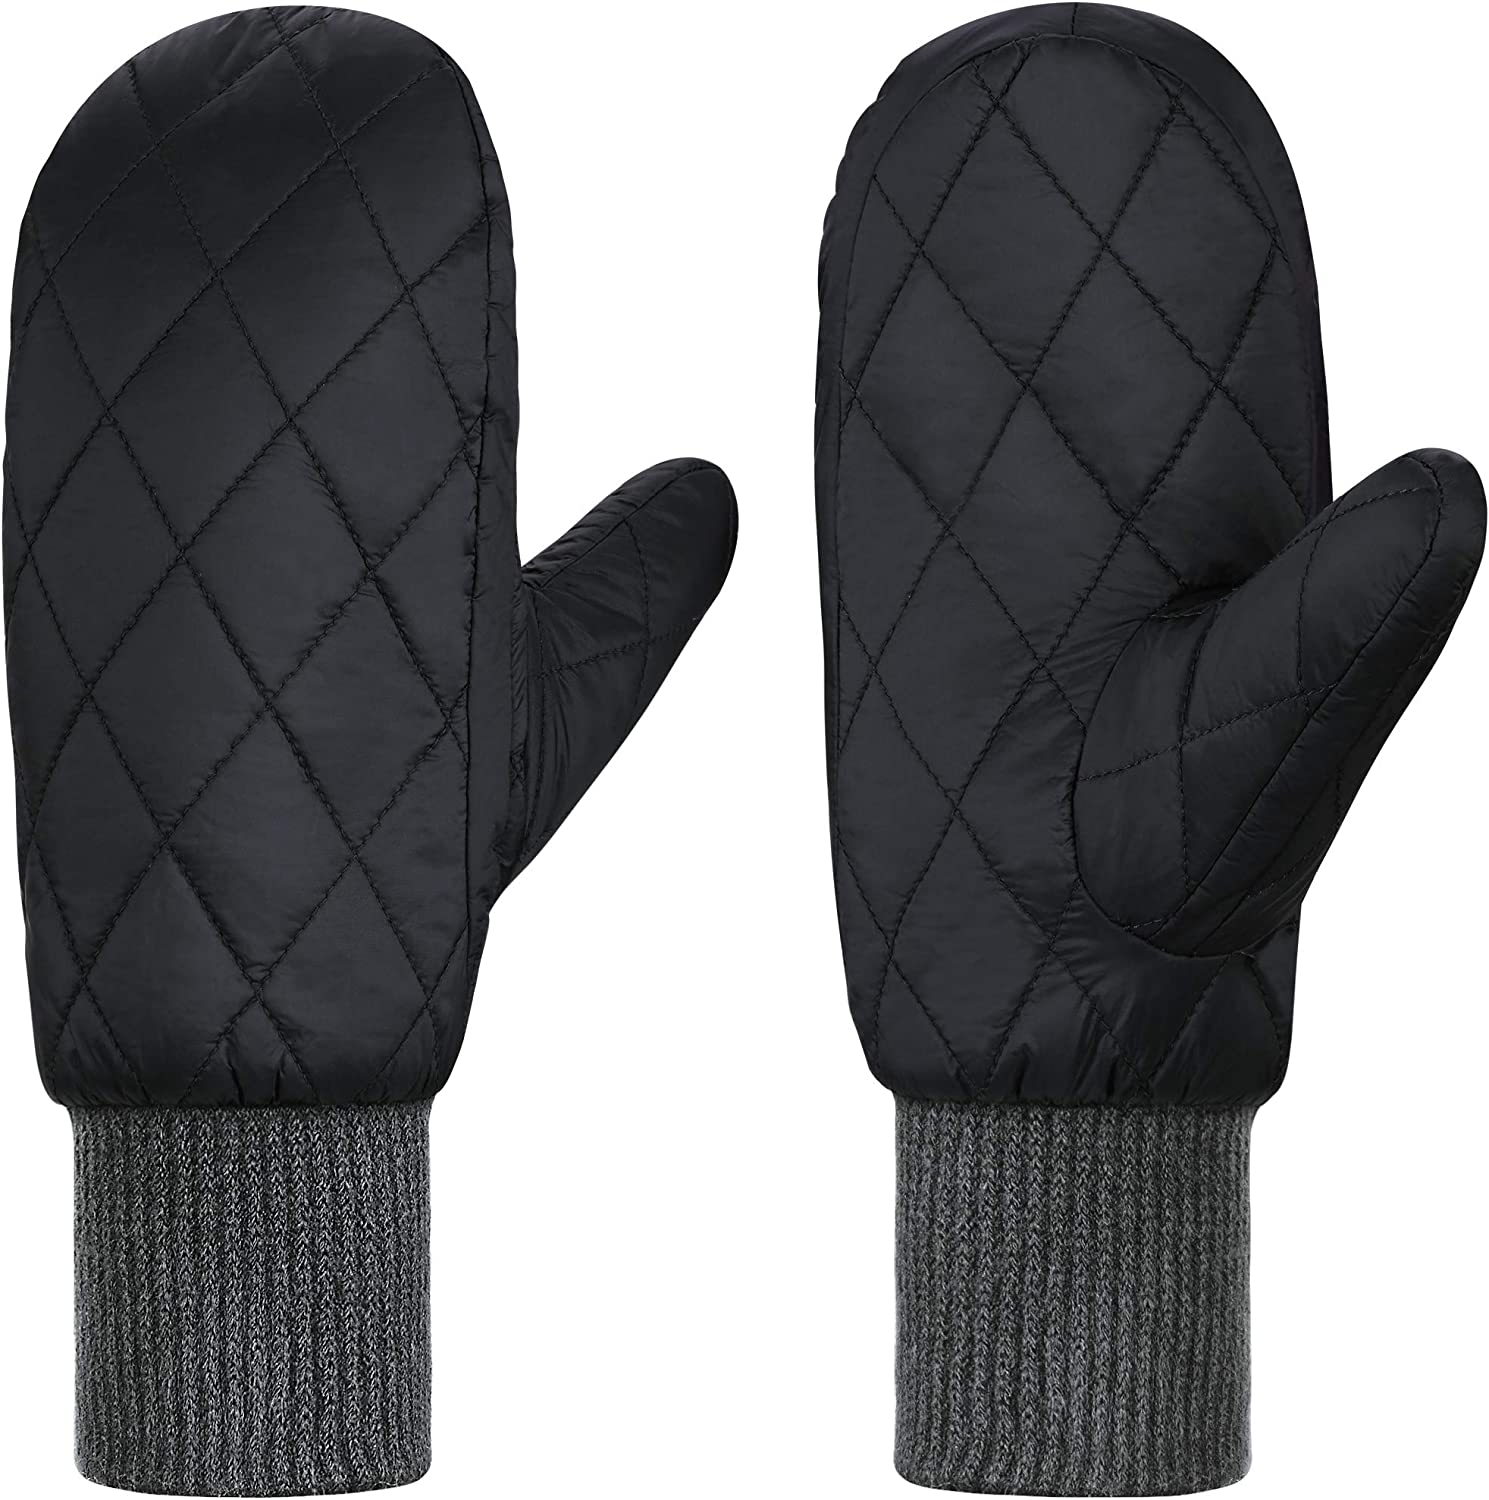 Andake 90% Duck Down Mittens Gloves For Women Man -20¨H Cold Weather Warm Winter Snow Gloves For Walking Jogging Work Outdoor